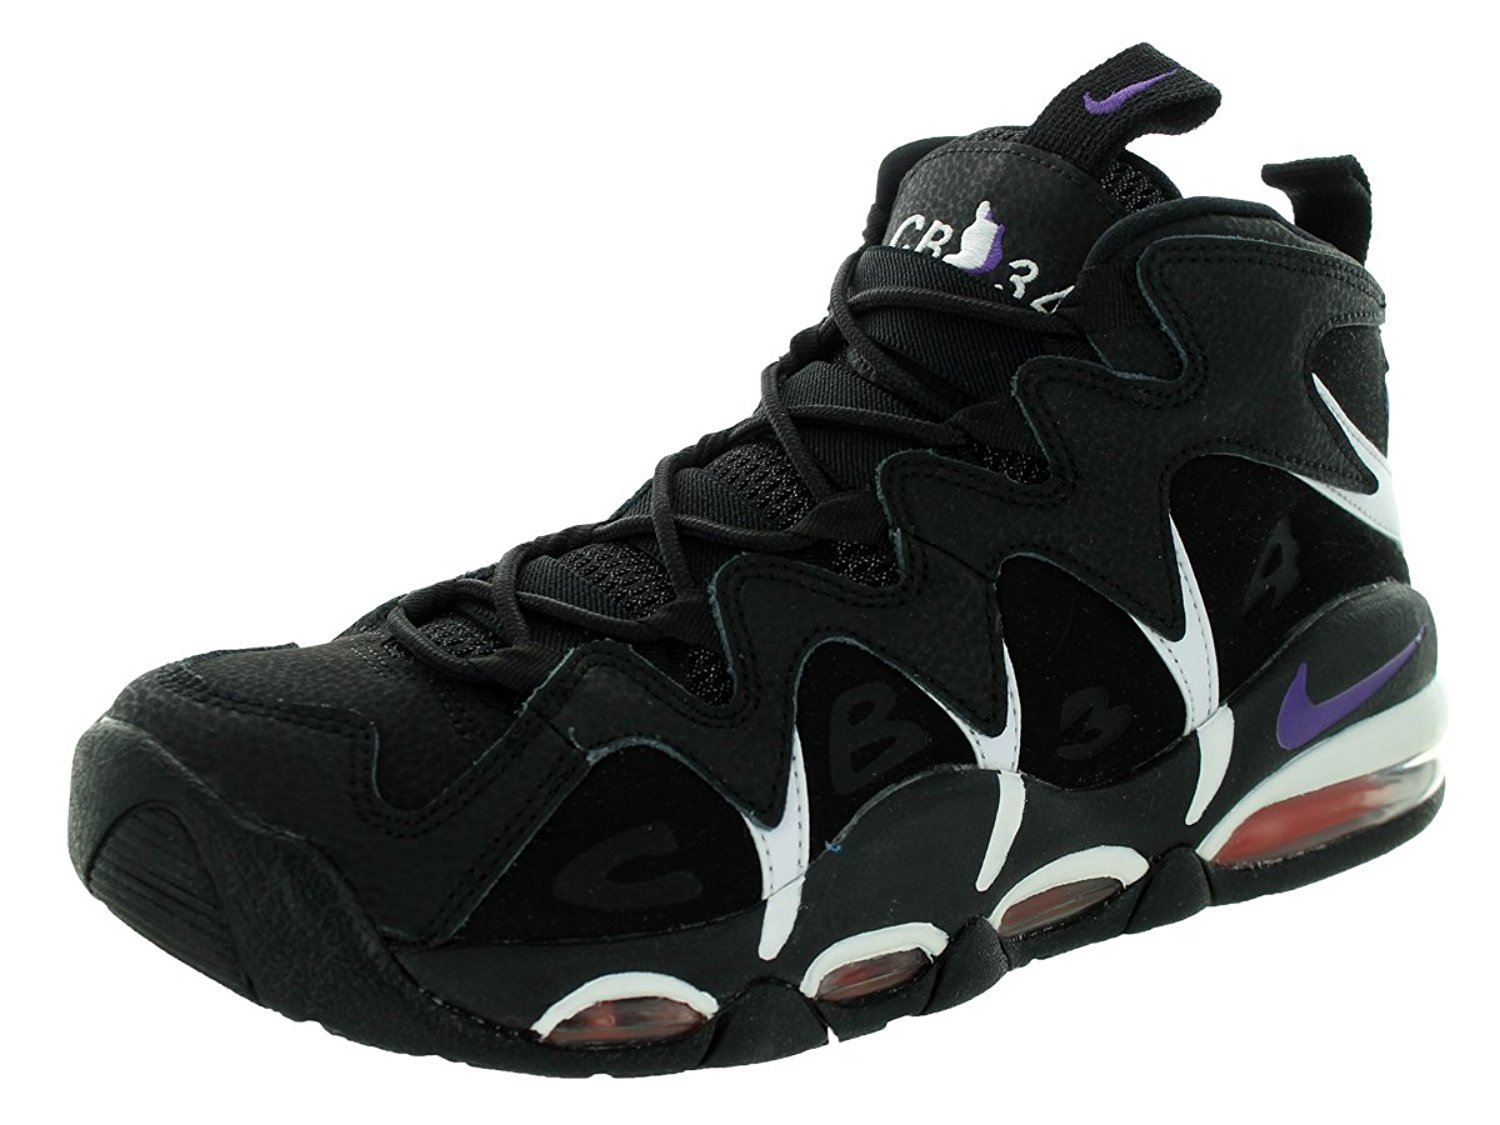 3a221e31a3 Cheap Nike Air Cb, find Nike Air Cb deals on line at Alibaba.com